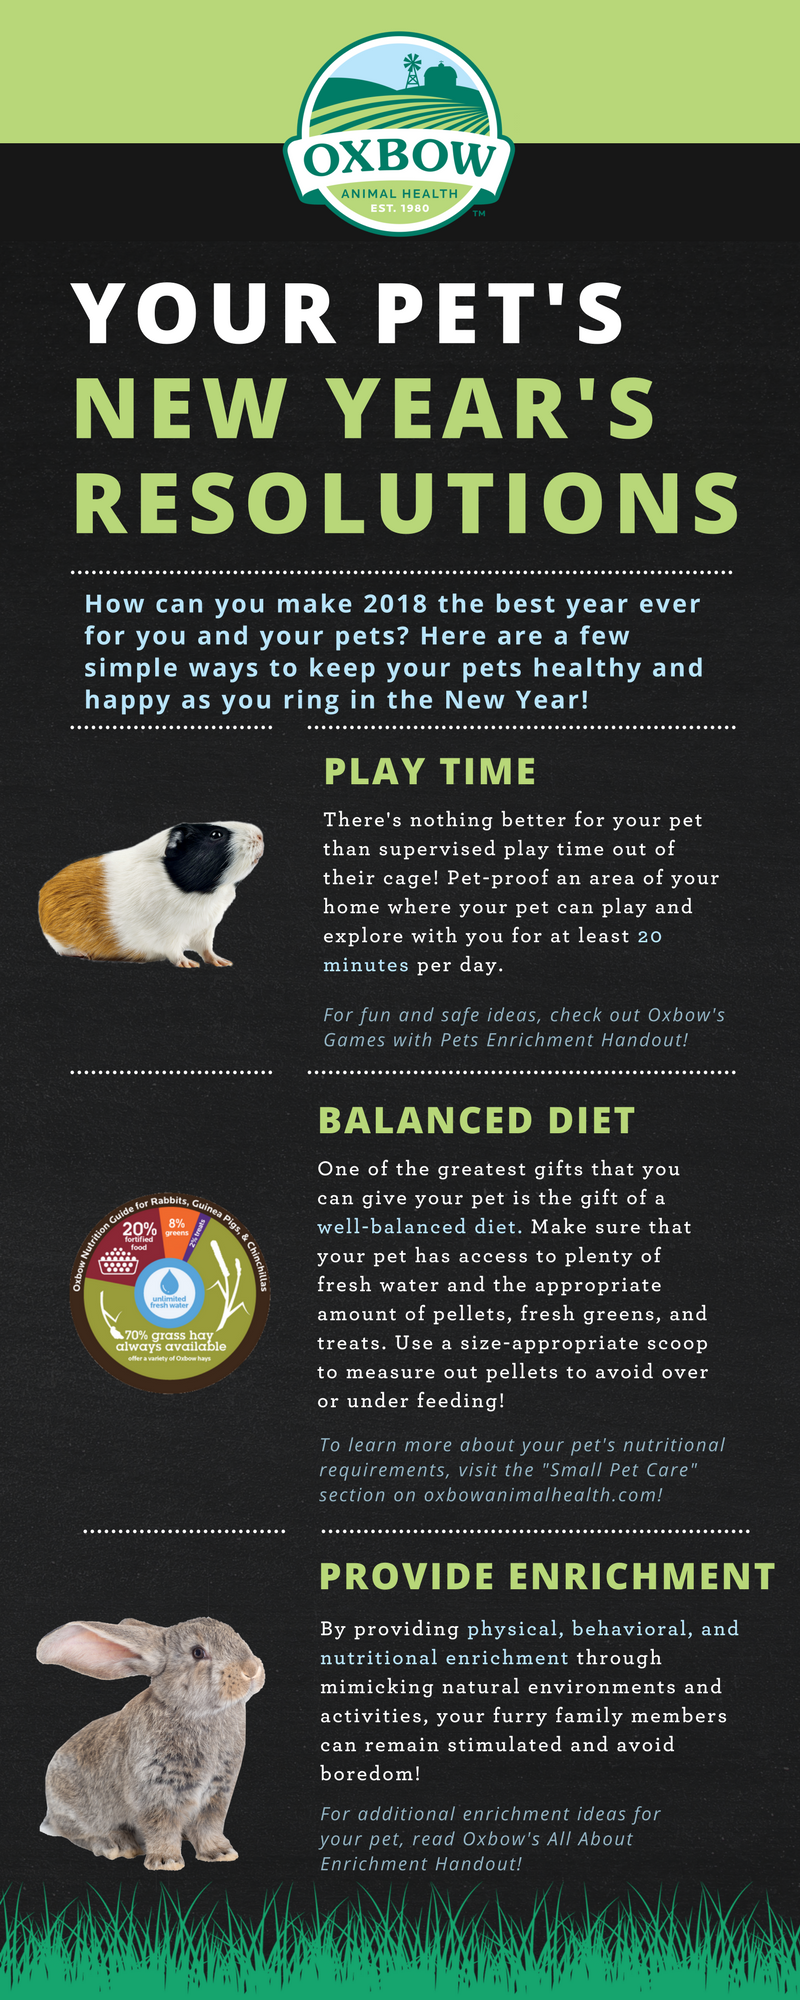 Making 2018 the Best Year for You and Your Pets